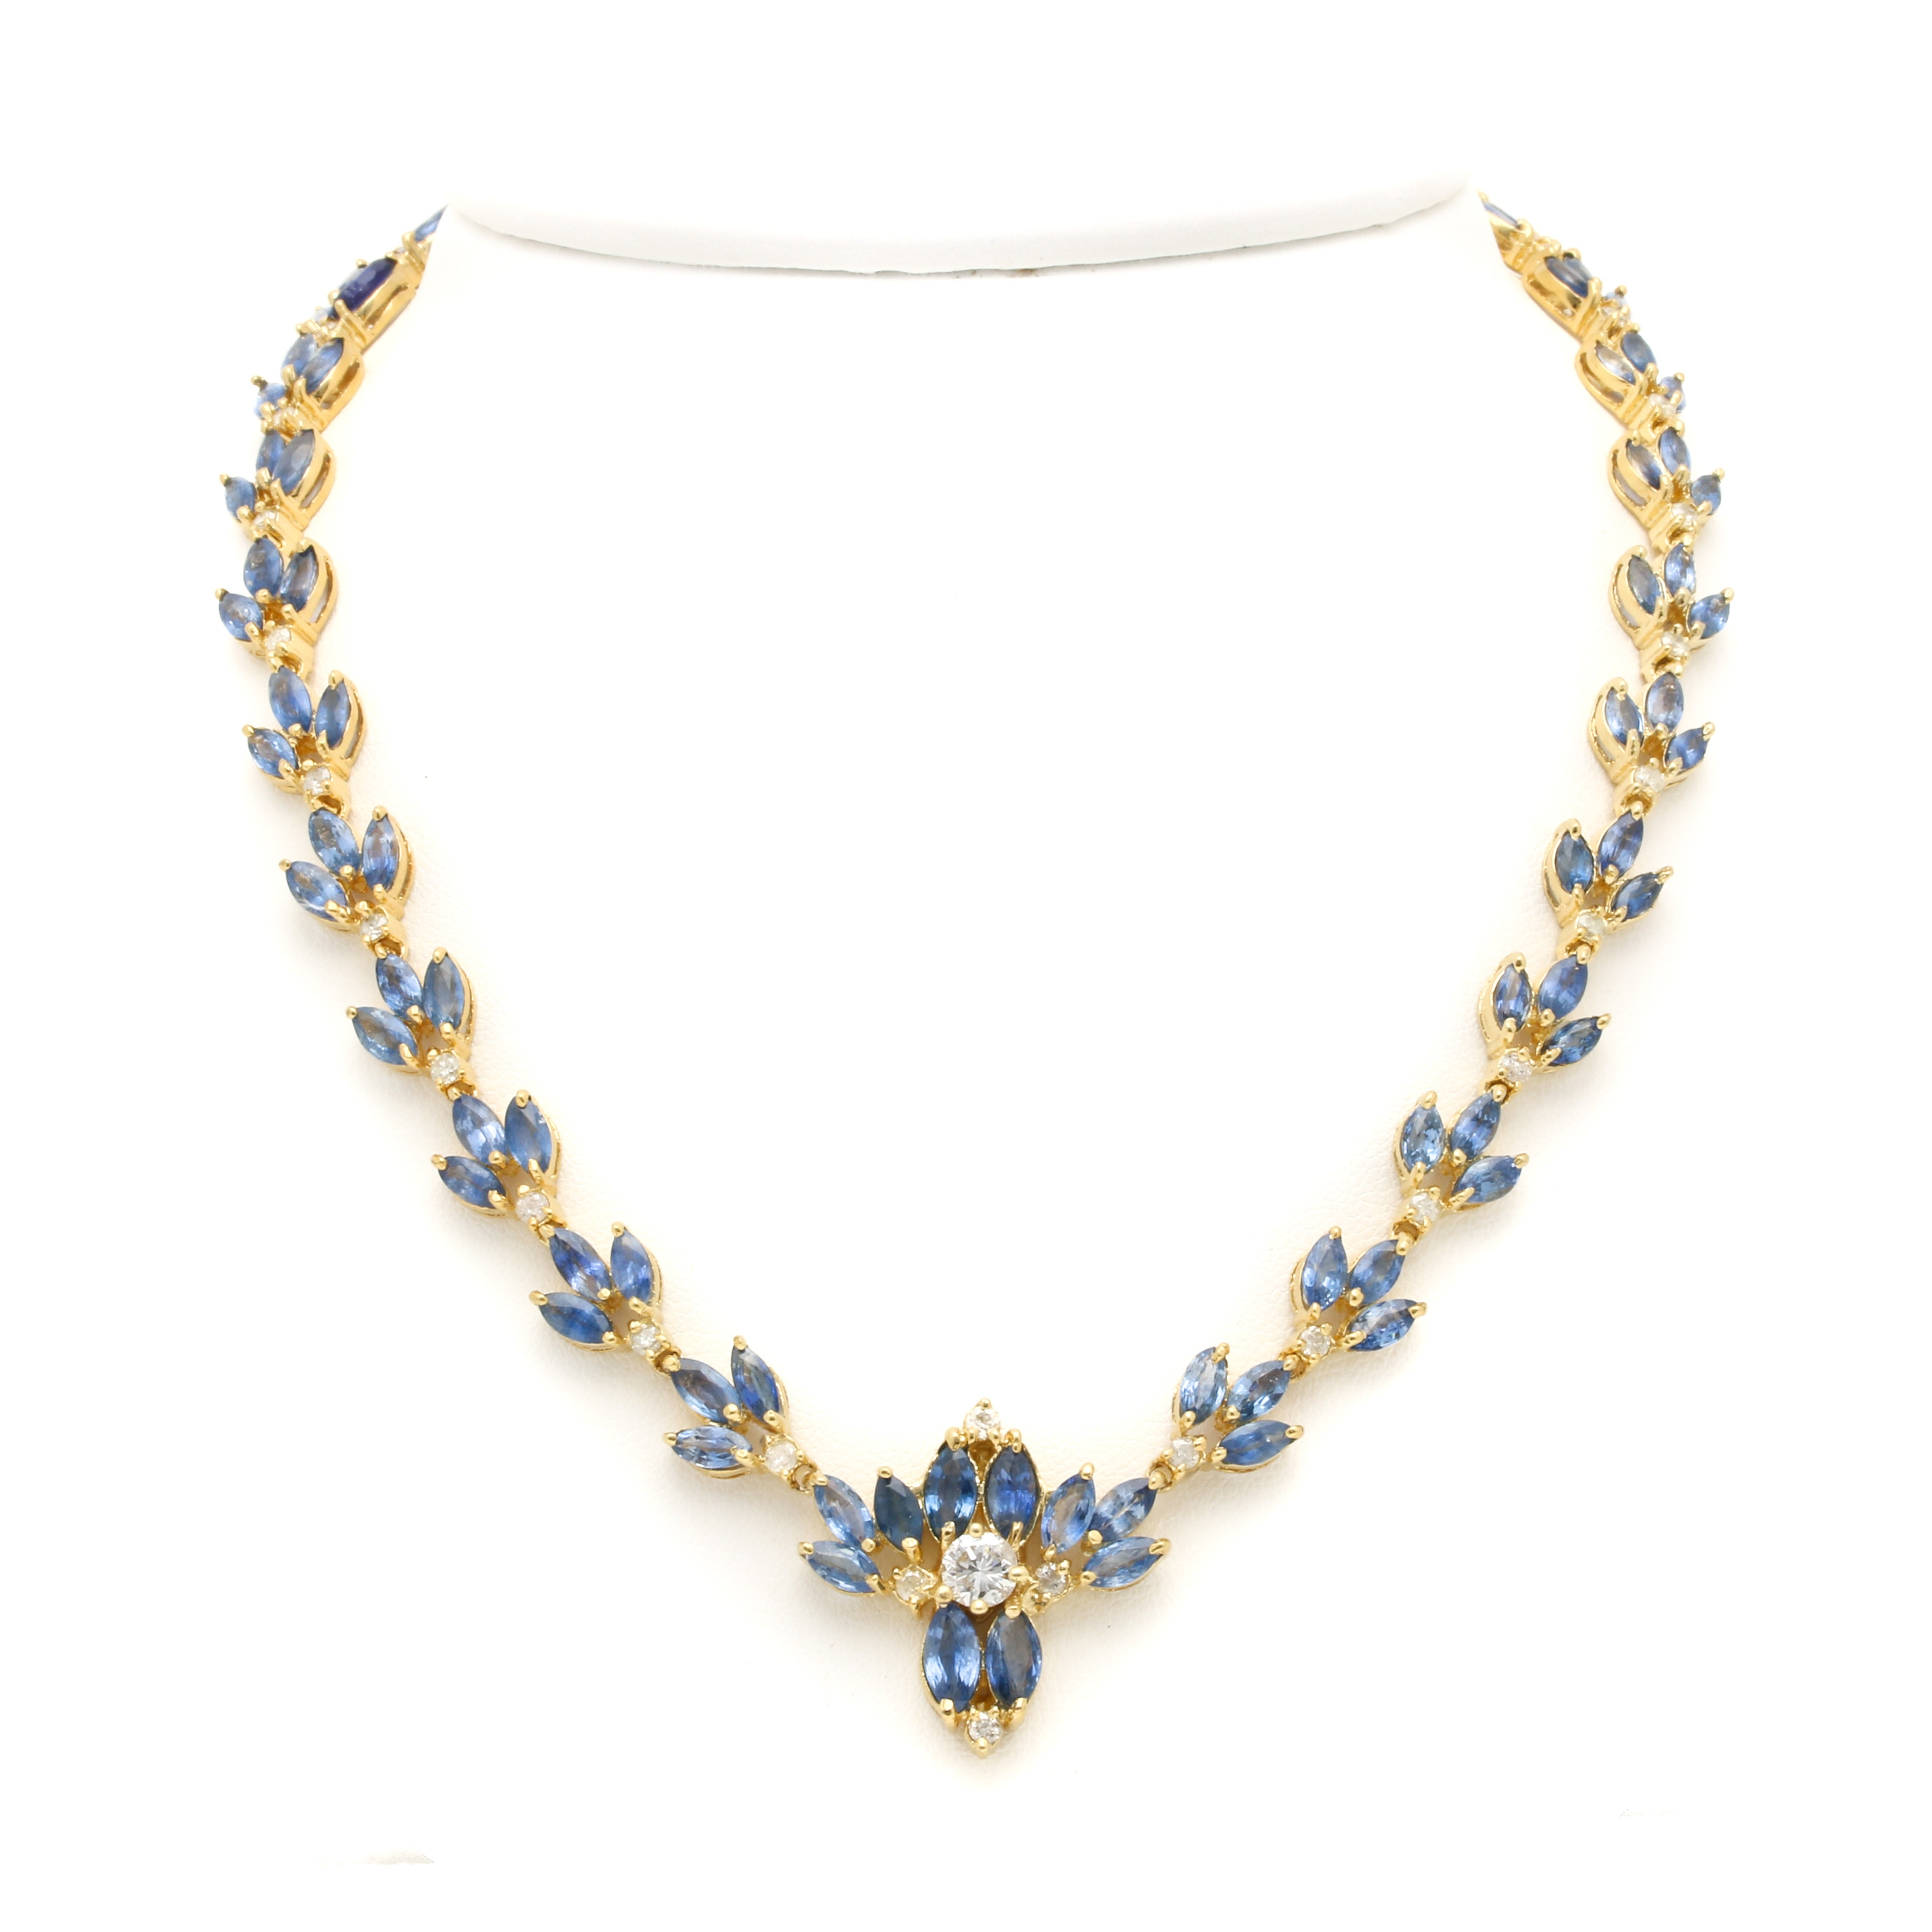 14K Yellow Gold 2.25 CTW Diamond and Sapphire Necklace